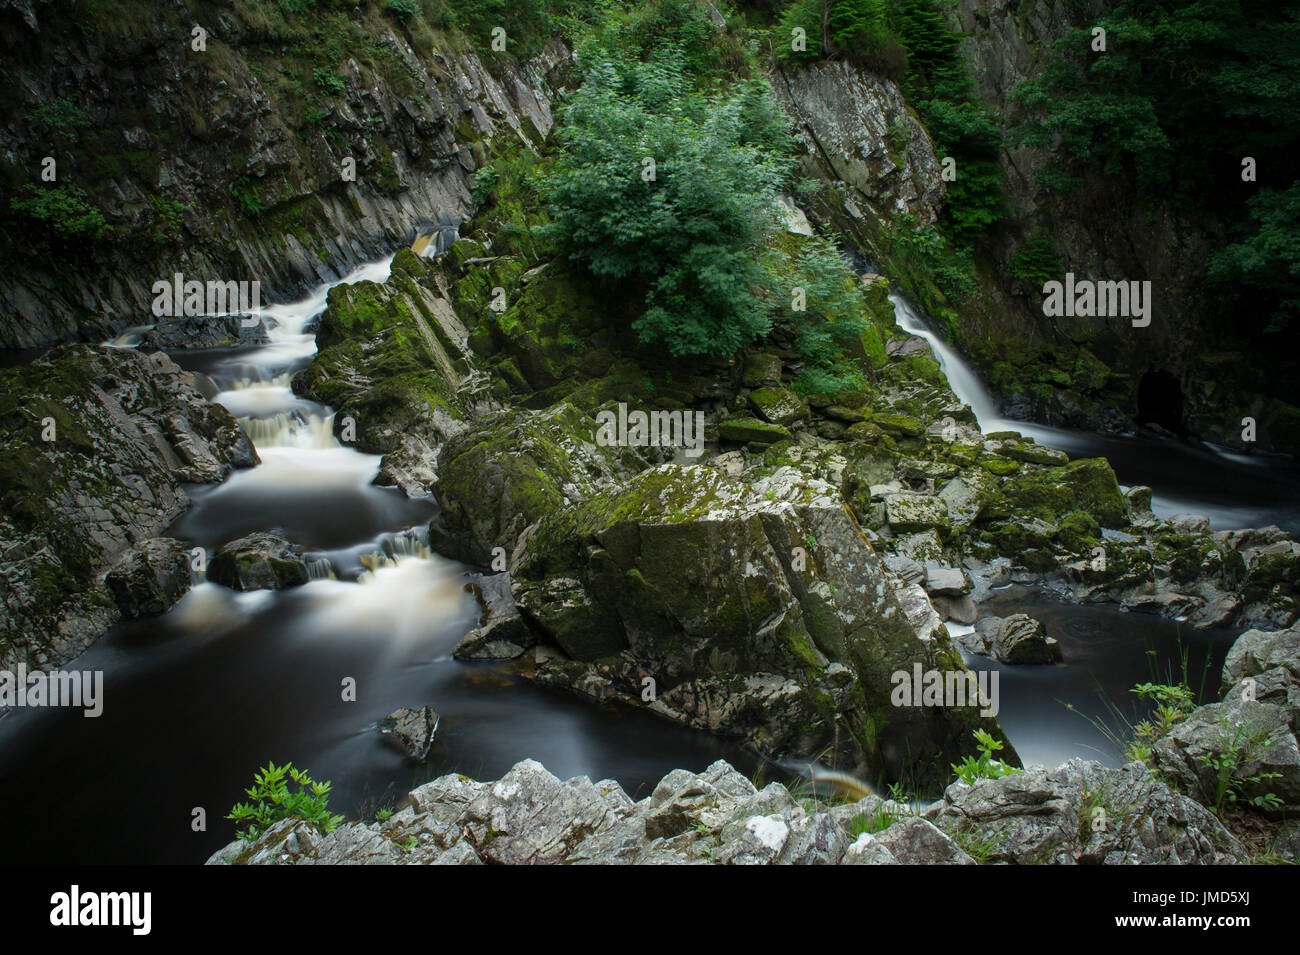 A long exposure of the beautiful Conwy Falls waterfall in Snowdonia National Park, Wales - Stock Image